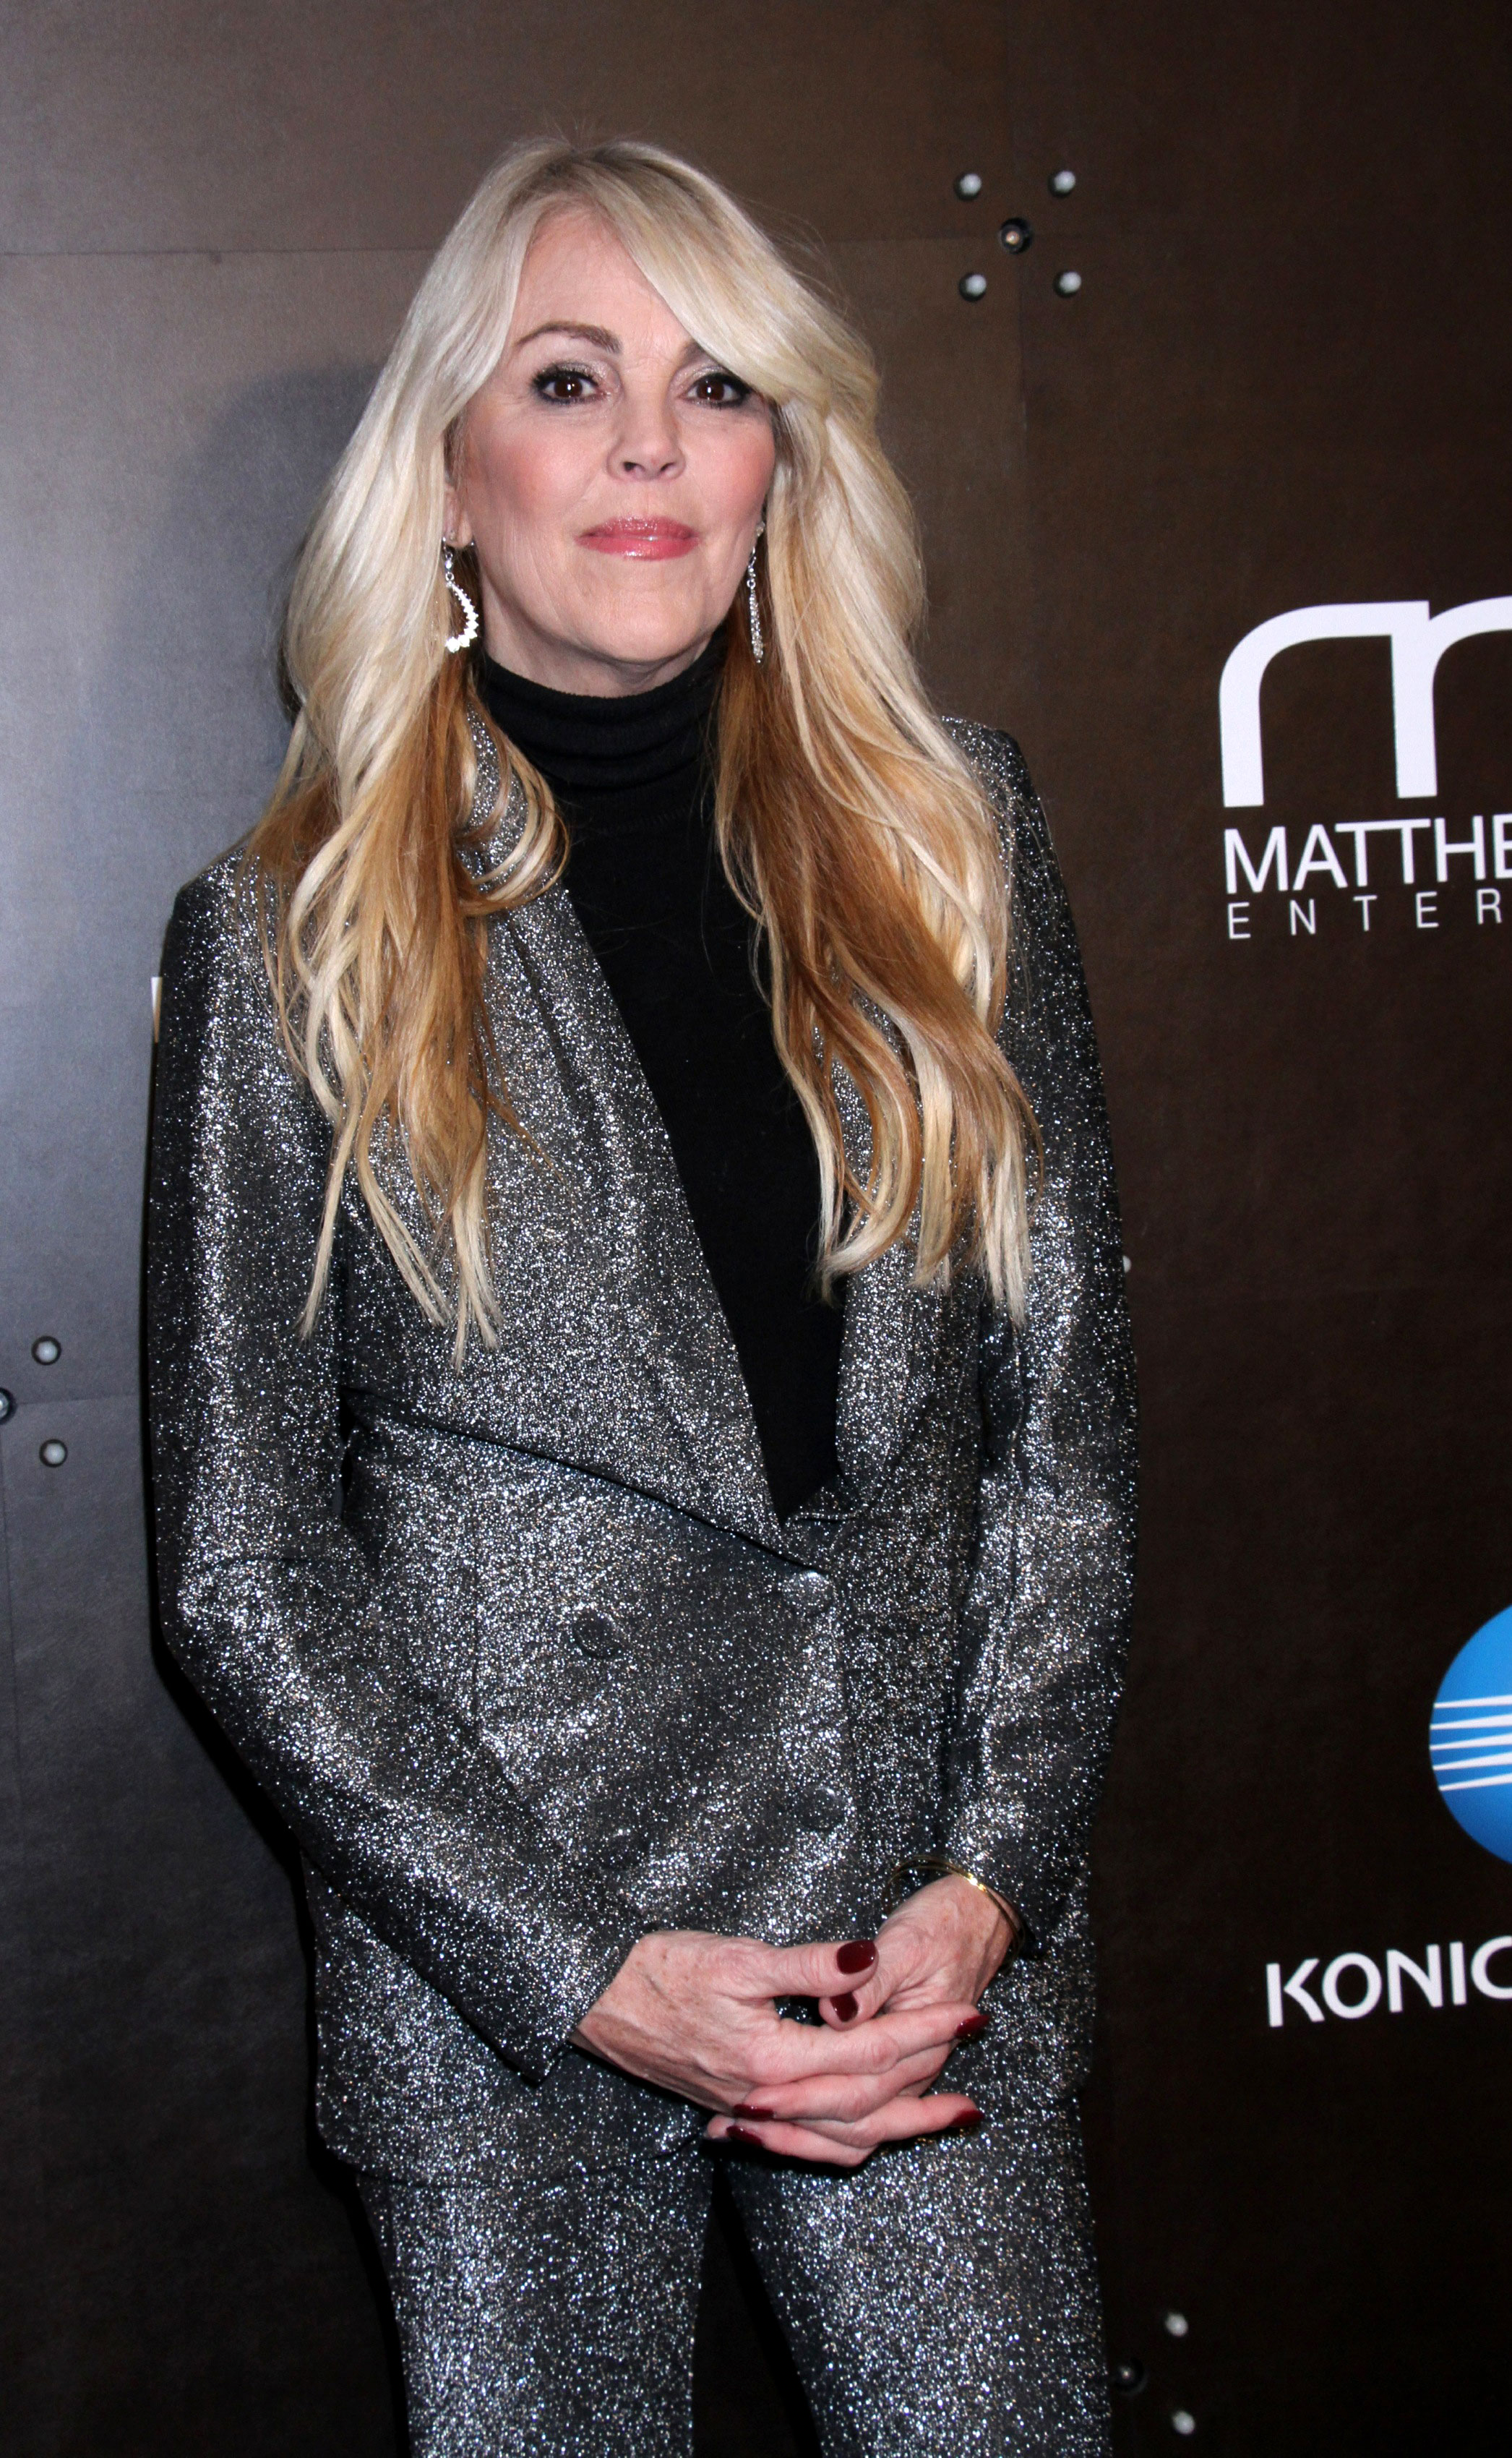 """dina lohan splits Jesse Nadler - Nadler told The Blast in April 2019 that he and the Celebrity Big Brother alum called it quits after 5 years of online dating. Lohan reportedly """"went off on him"""" over a Facebook photo, which prompted a big fight between the pair."""